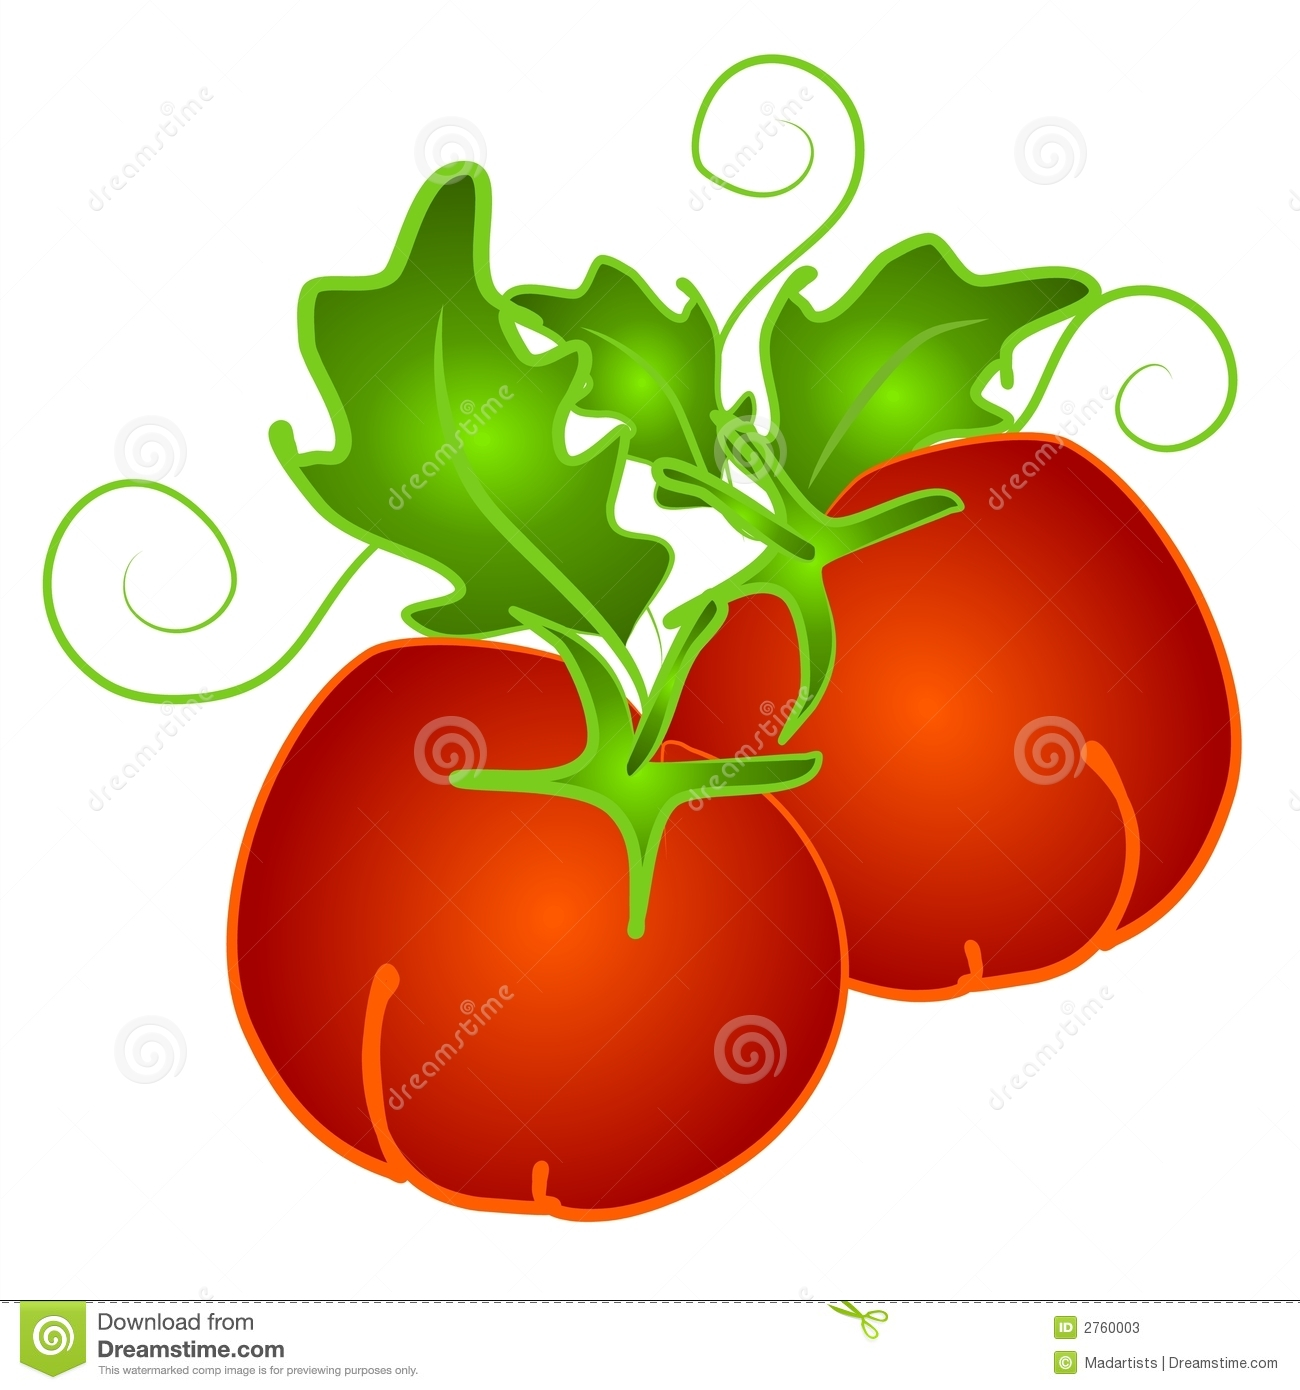 Tomatoes Clip Art | Clipart Panda - Free Clipart Images